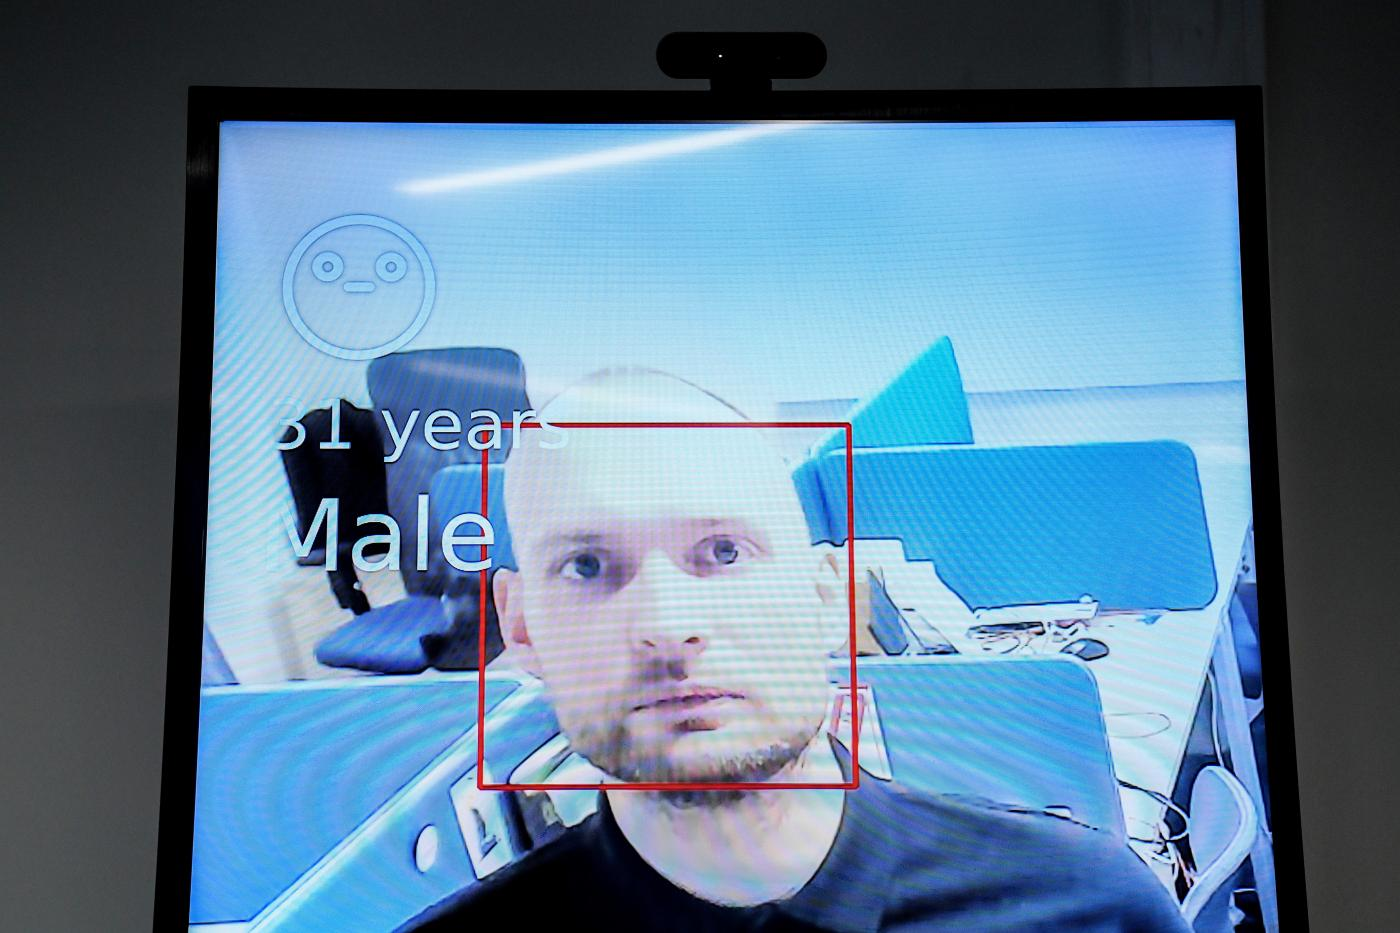 Microsoft pulls its smaller investments in facial recognition tech